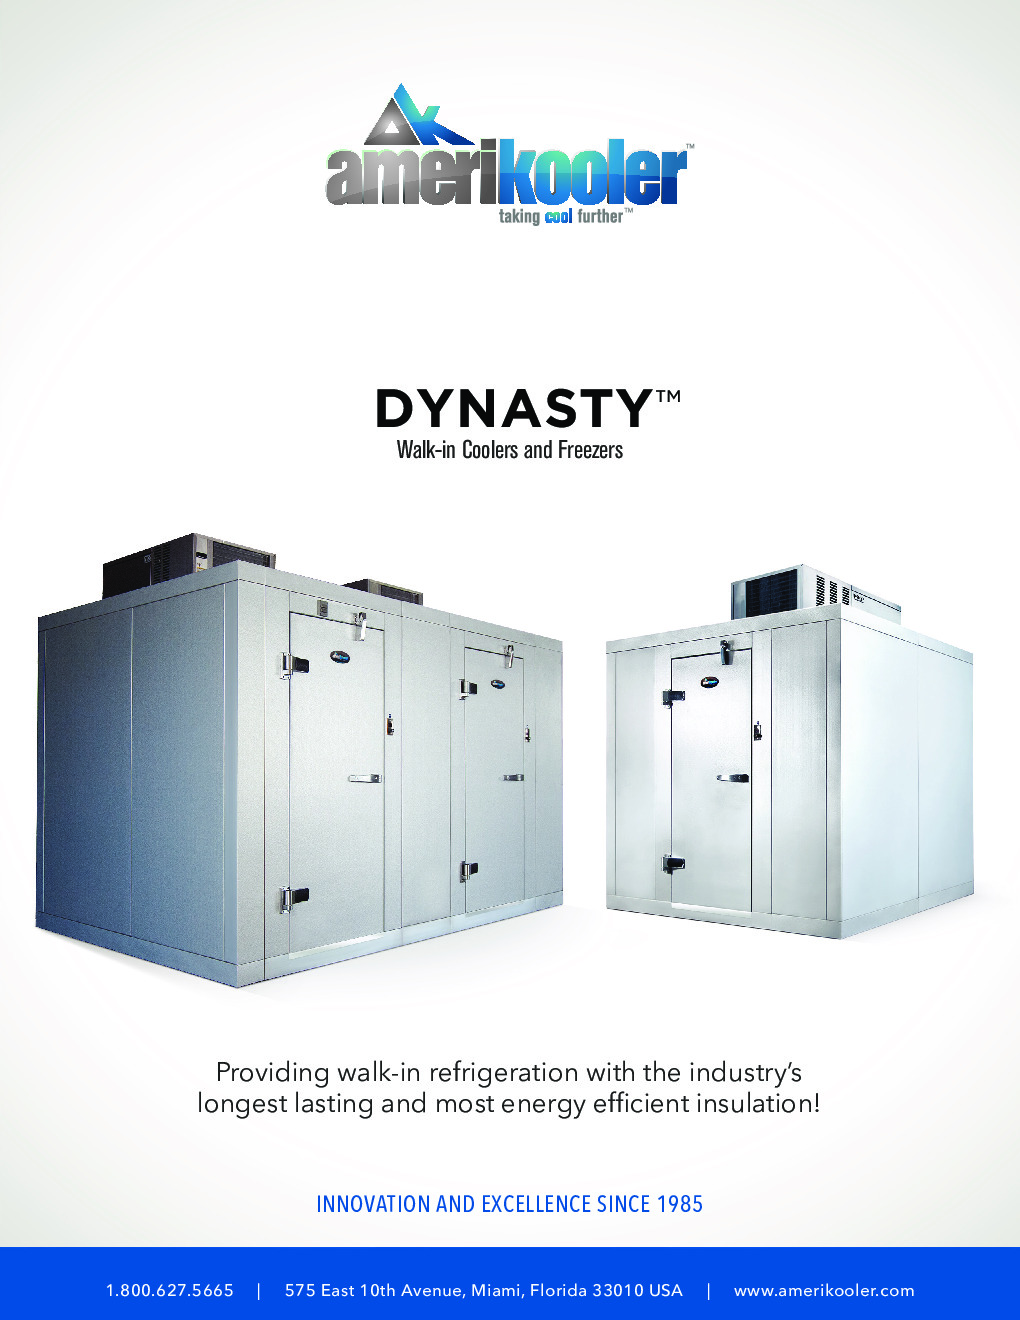 AmeriKooler DW092077N-8/12-SC 9' X 20' Walk-In Cooler, 12' L Cooler without Floor and 8' L Freezer, Self Contained